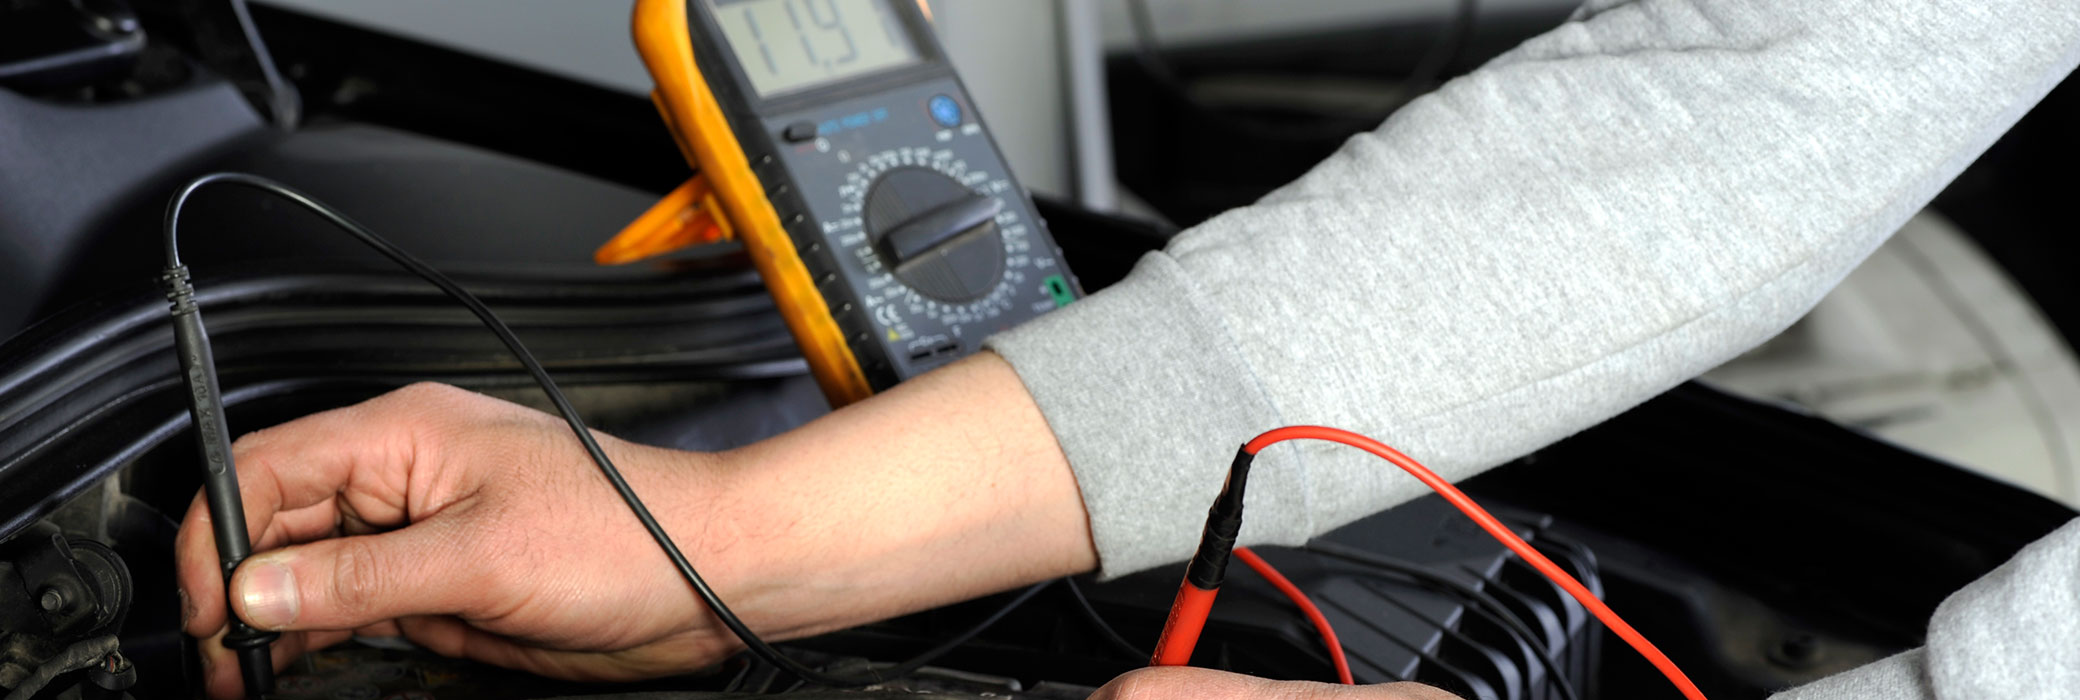 Experiencing problems with your battery holding a charge? Learn about what might be happening.